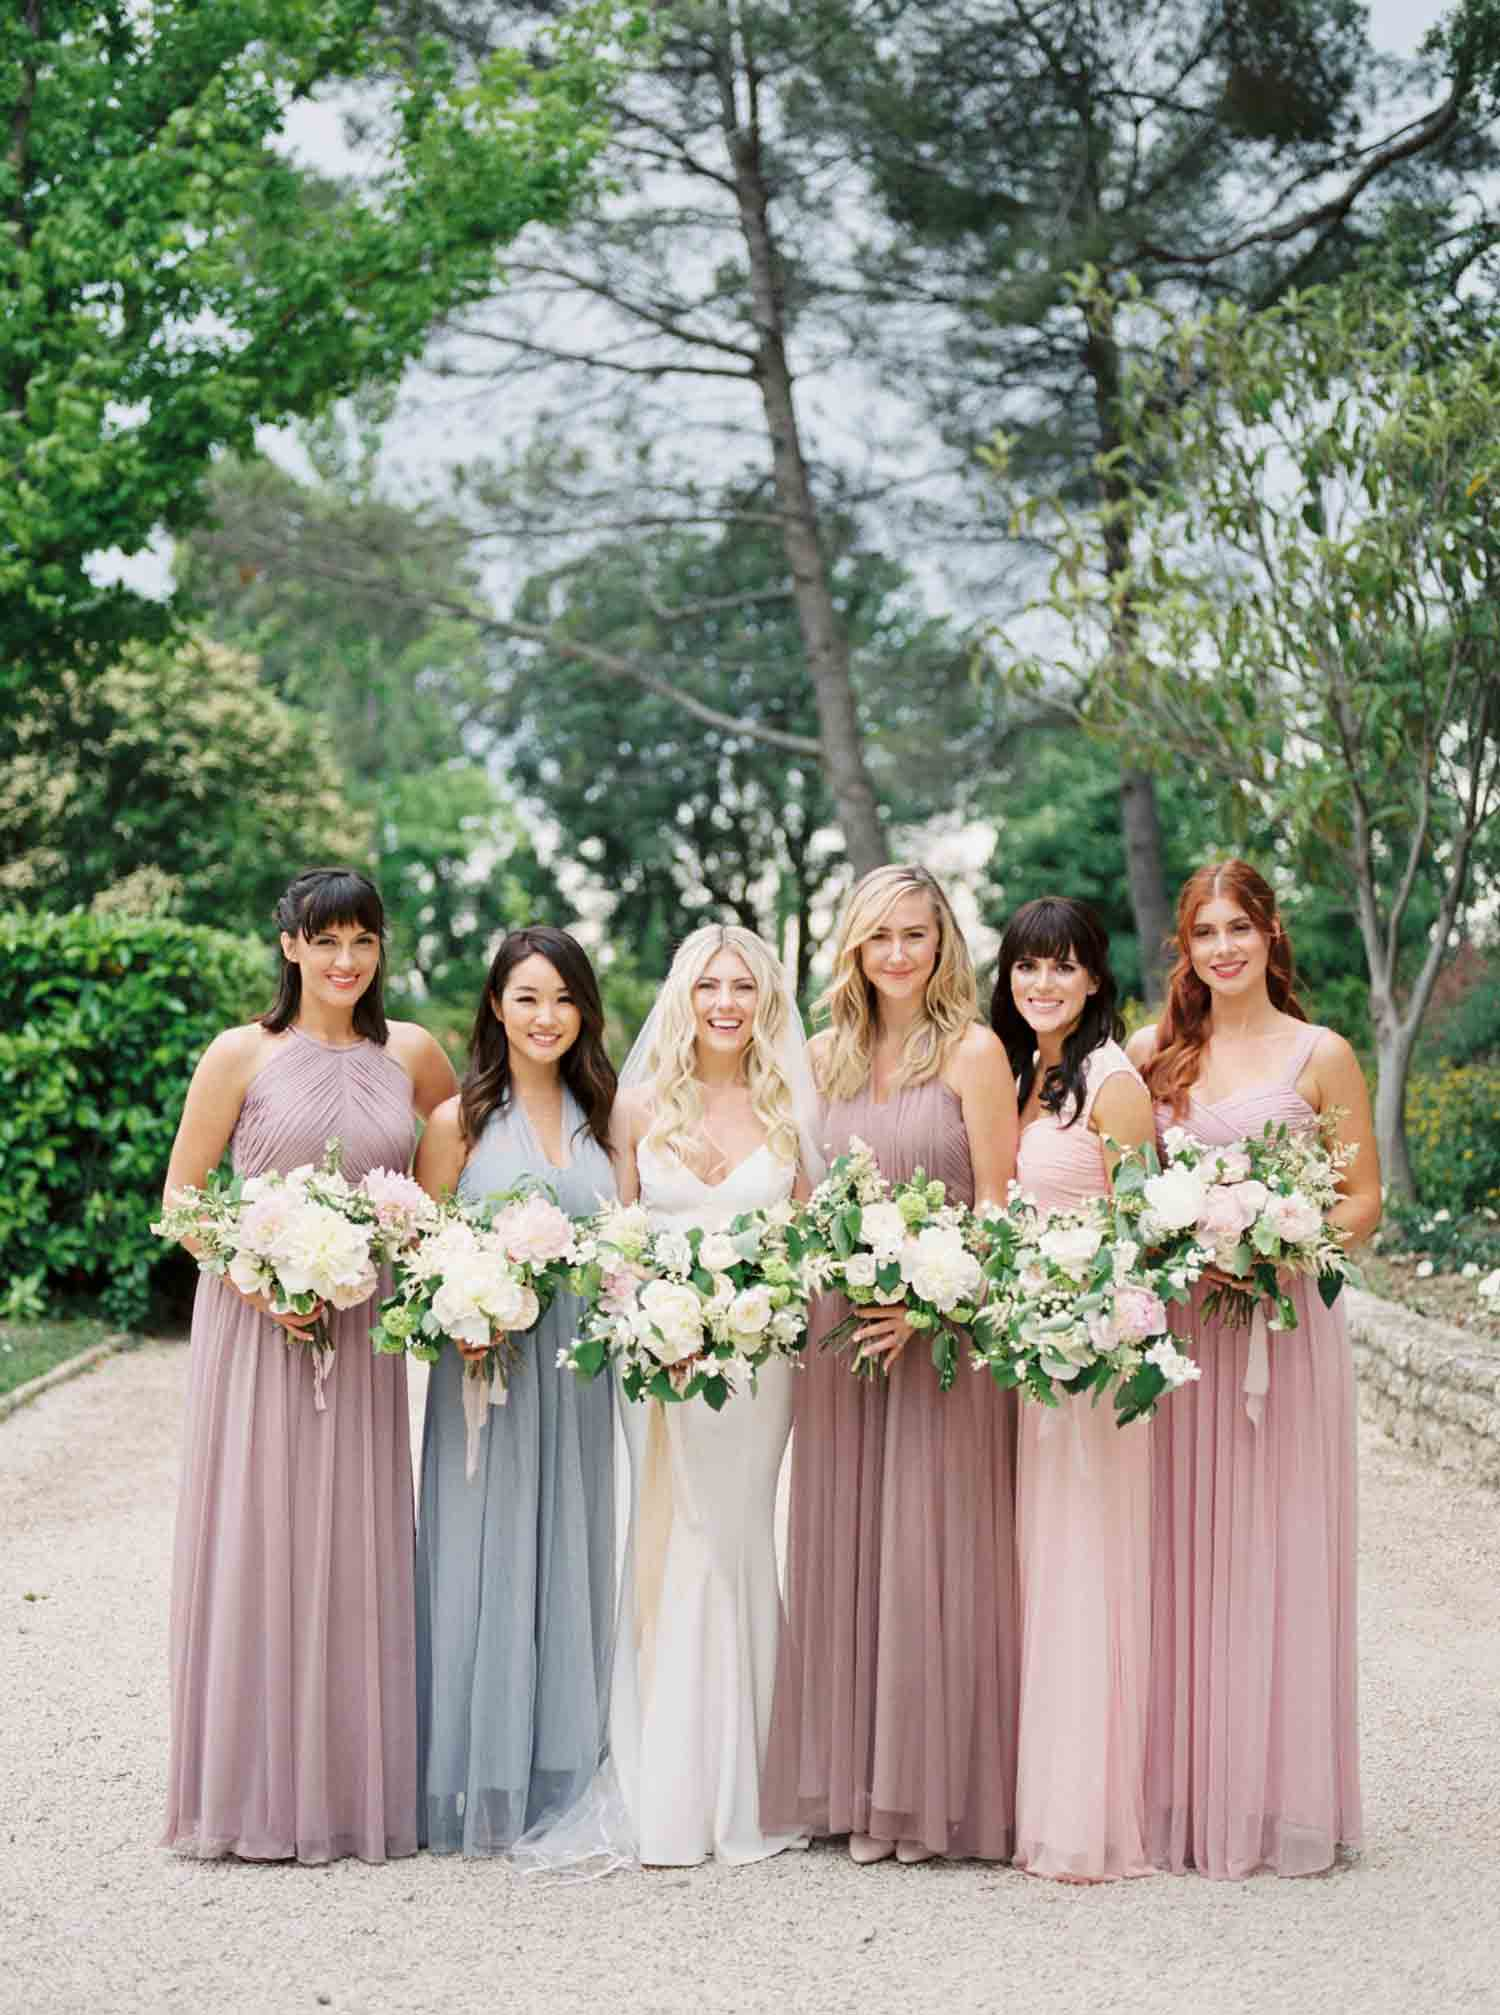 Bridesmaids standing in a row holding flowers next to the bride.